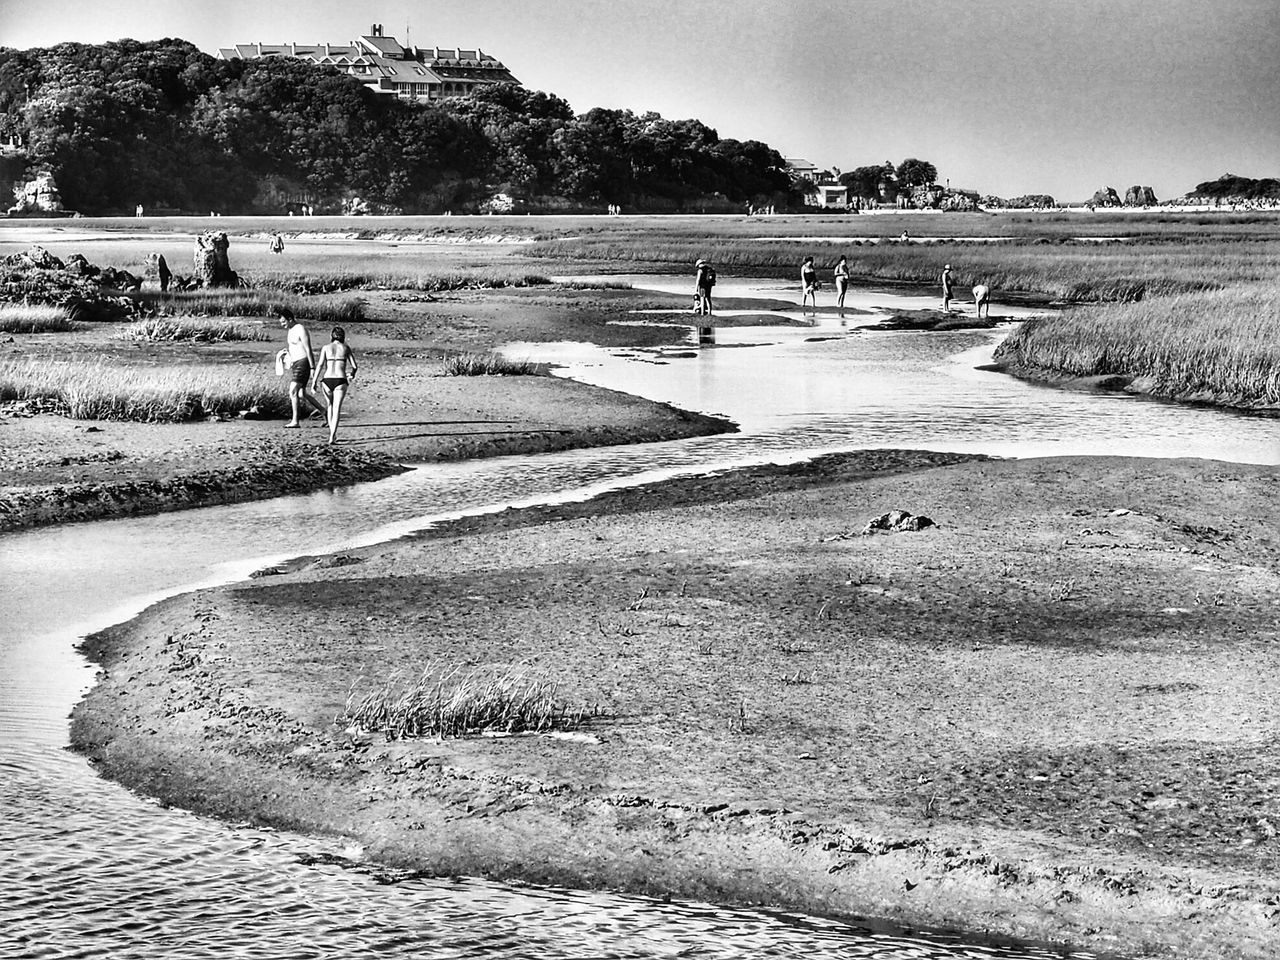 Marshes - Isla, Cantabria. Enjoying Life EyeEm Best Shots - Nature AMPt_community NEM Submissions Streemzoofamily Tadaa Community Sea_collection Weekend Activities Vscocam Outdoors EyeEm Best Shots - Black + White Blackandwhite Bnw_collection Bnw Photography